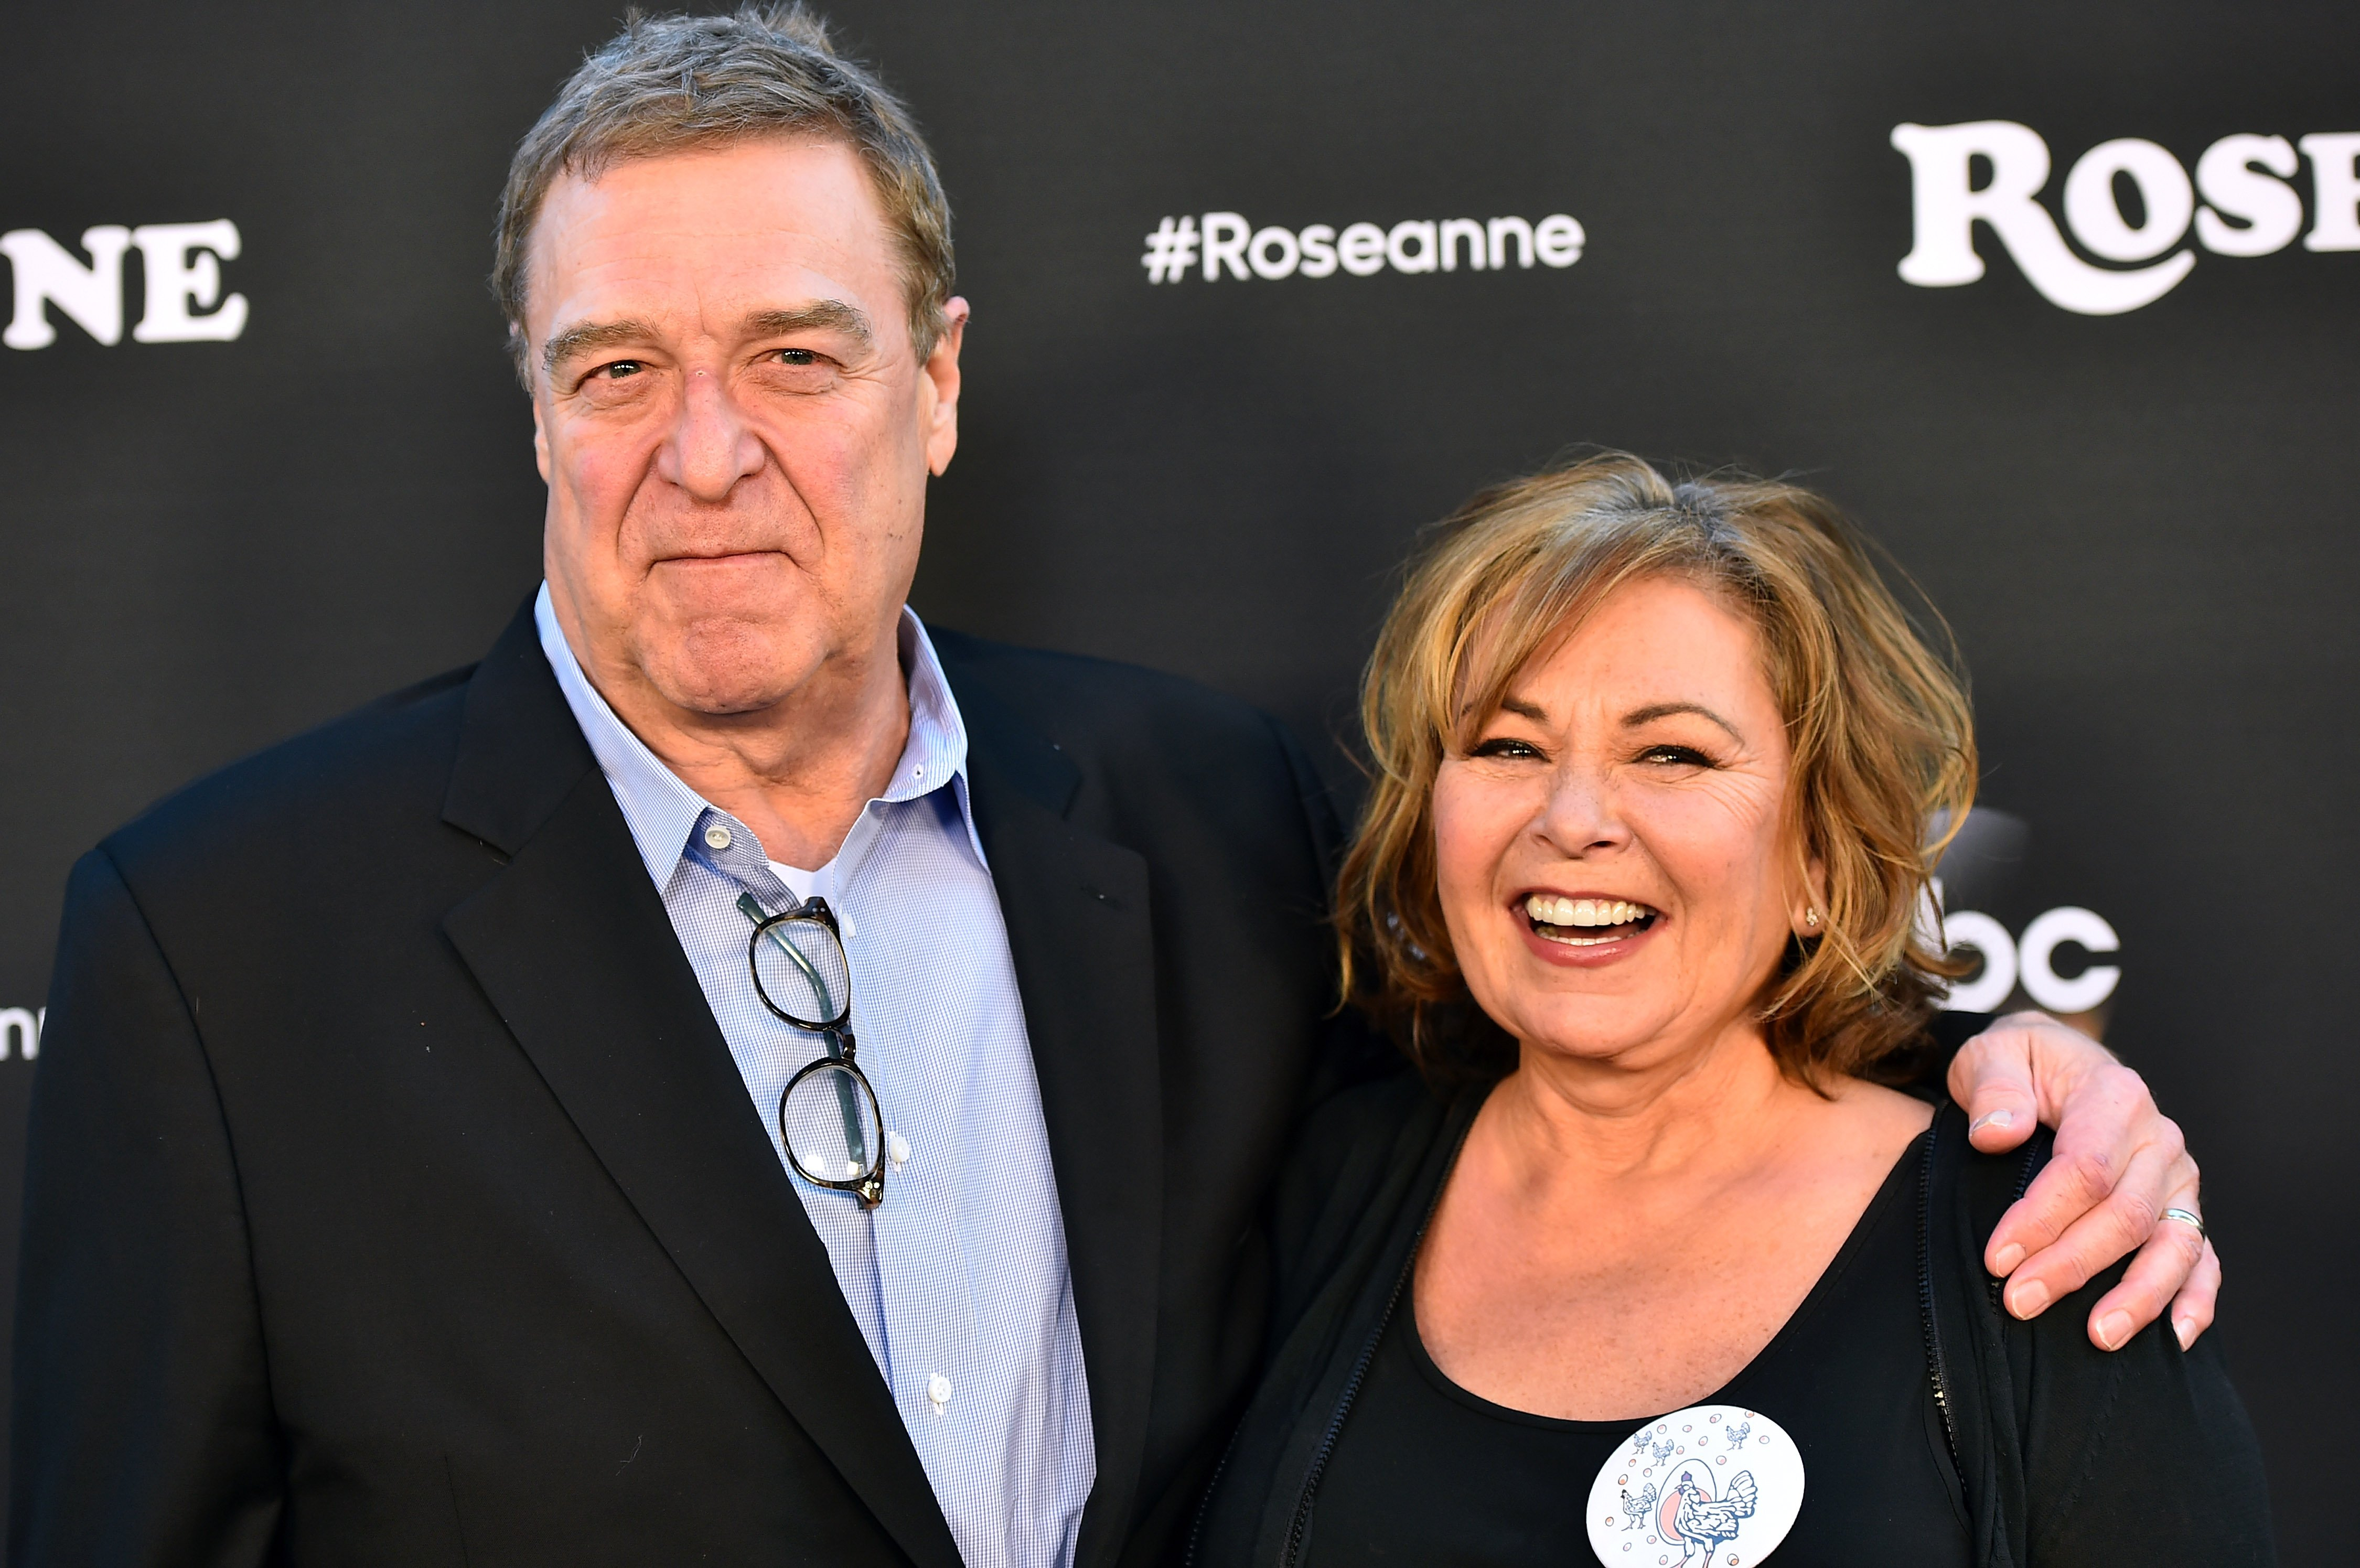 """Roseanna Barr and John Goodman attend the premiere of """"Roseanne"""" on March 23, 2018 